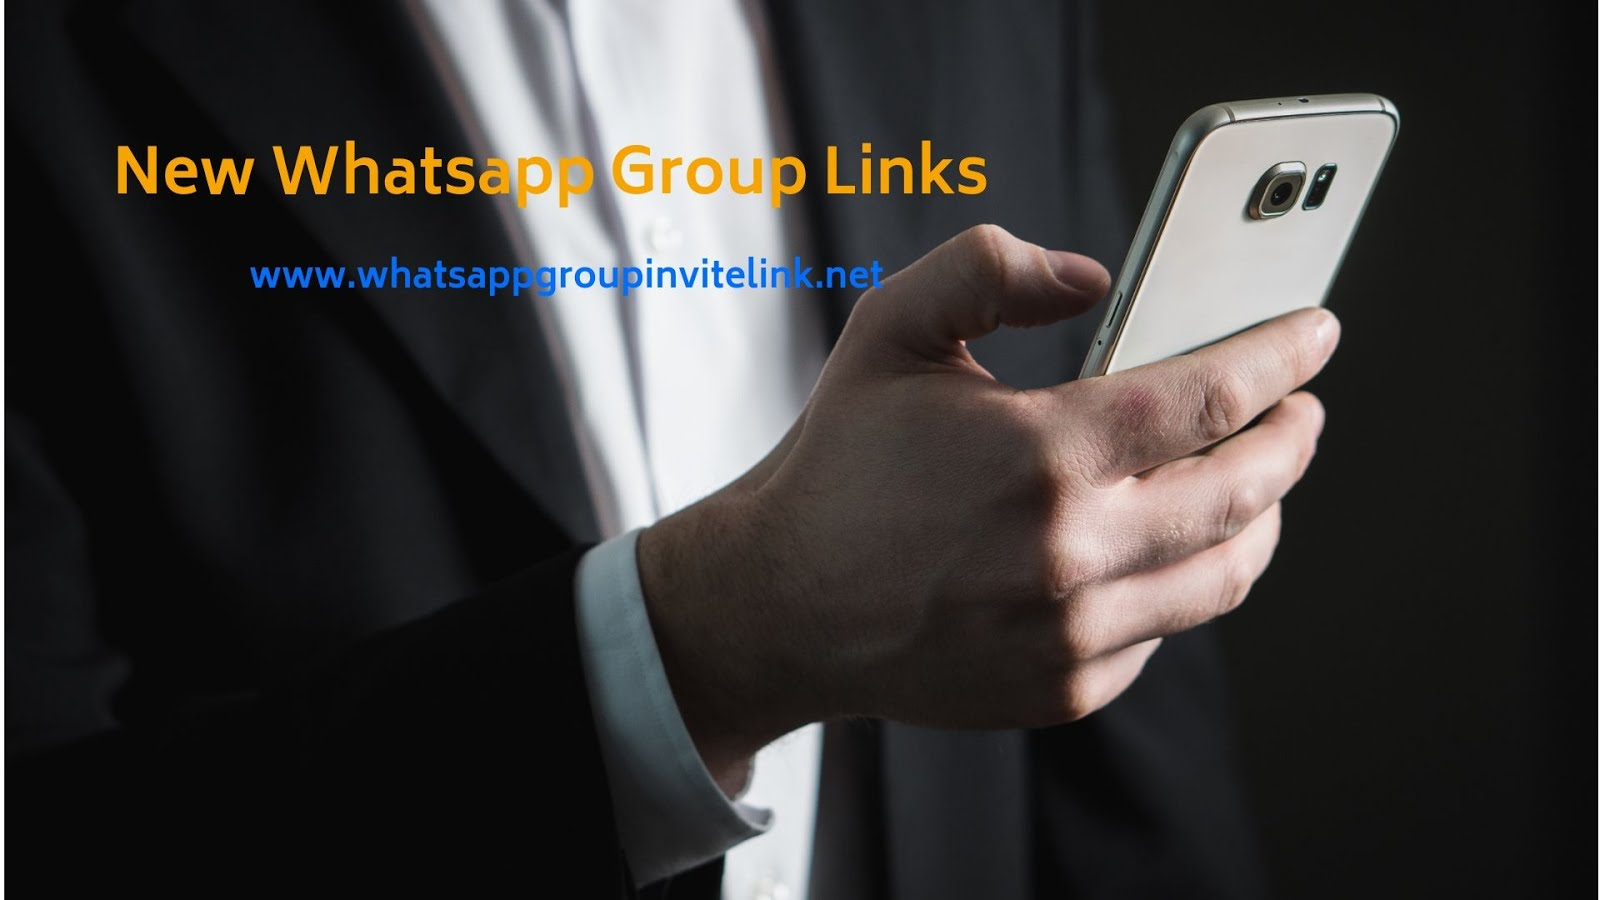 Whatsapp Group Invite Links: Whatsapp Group Invite Links